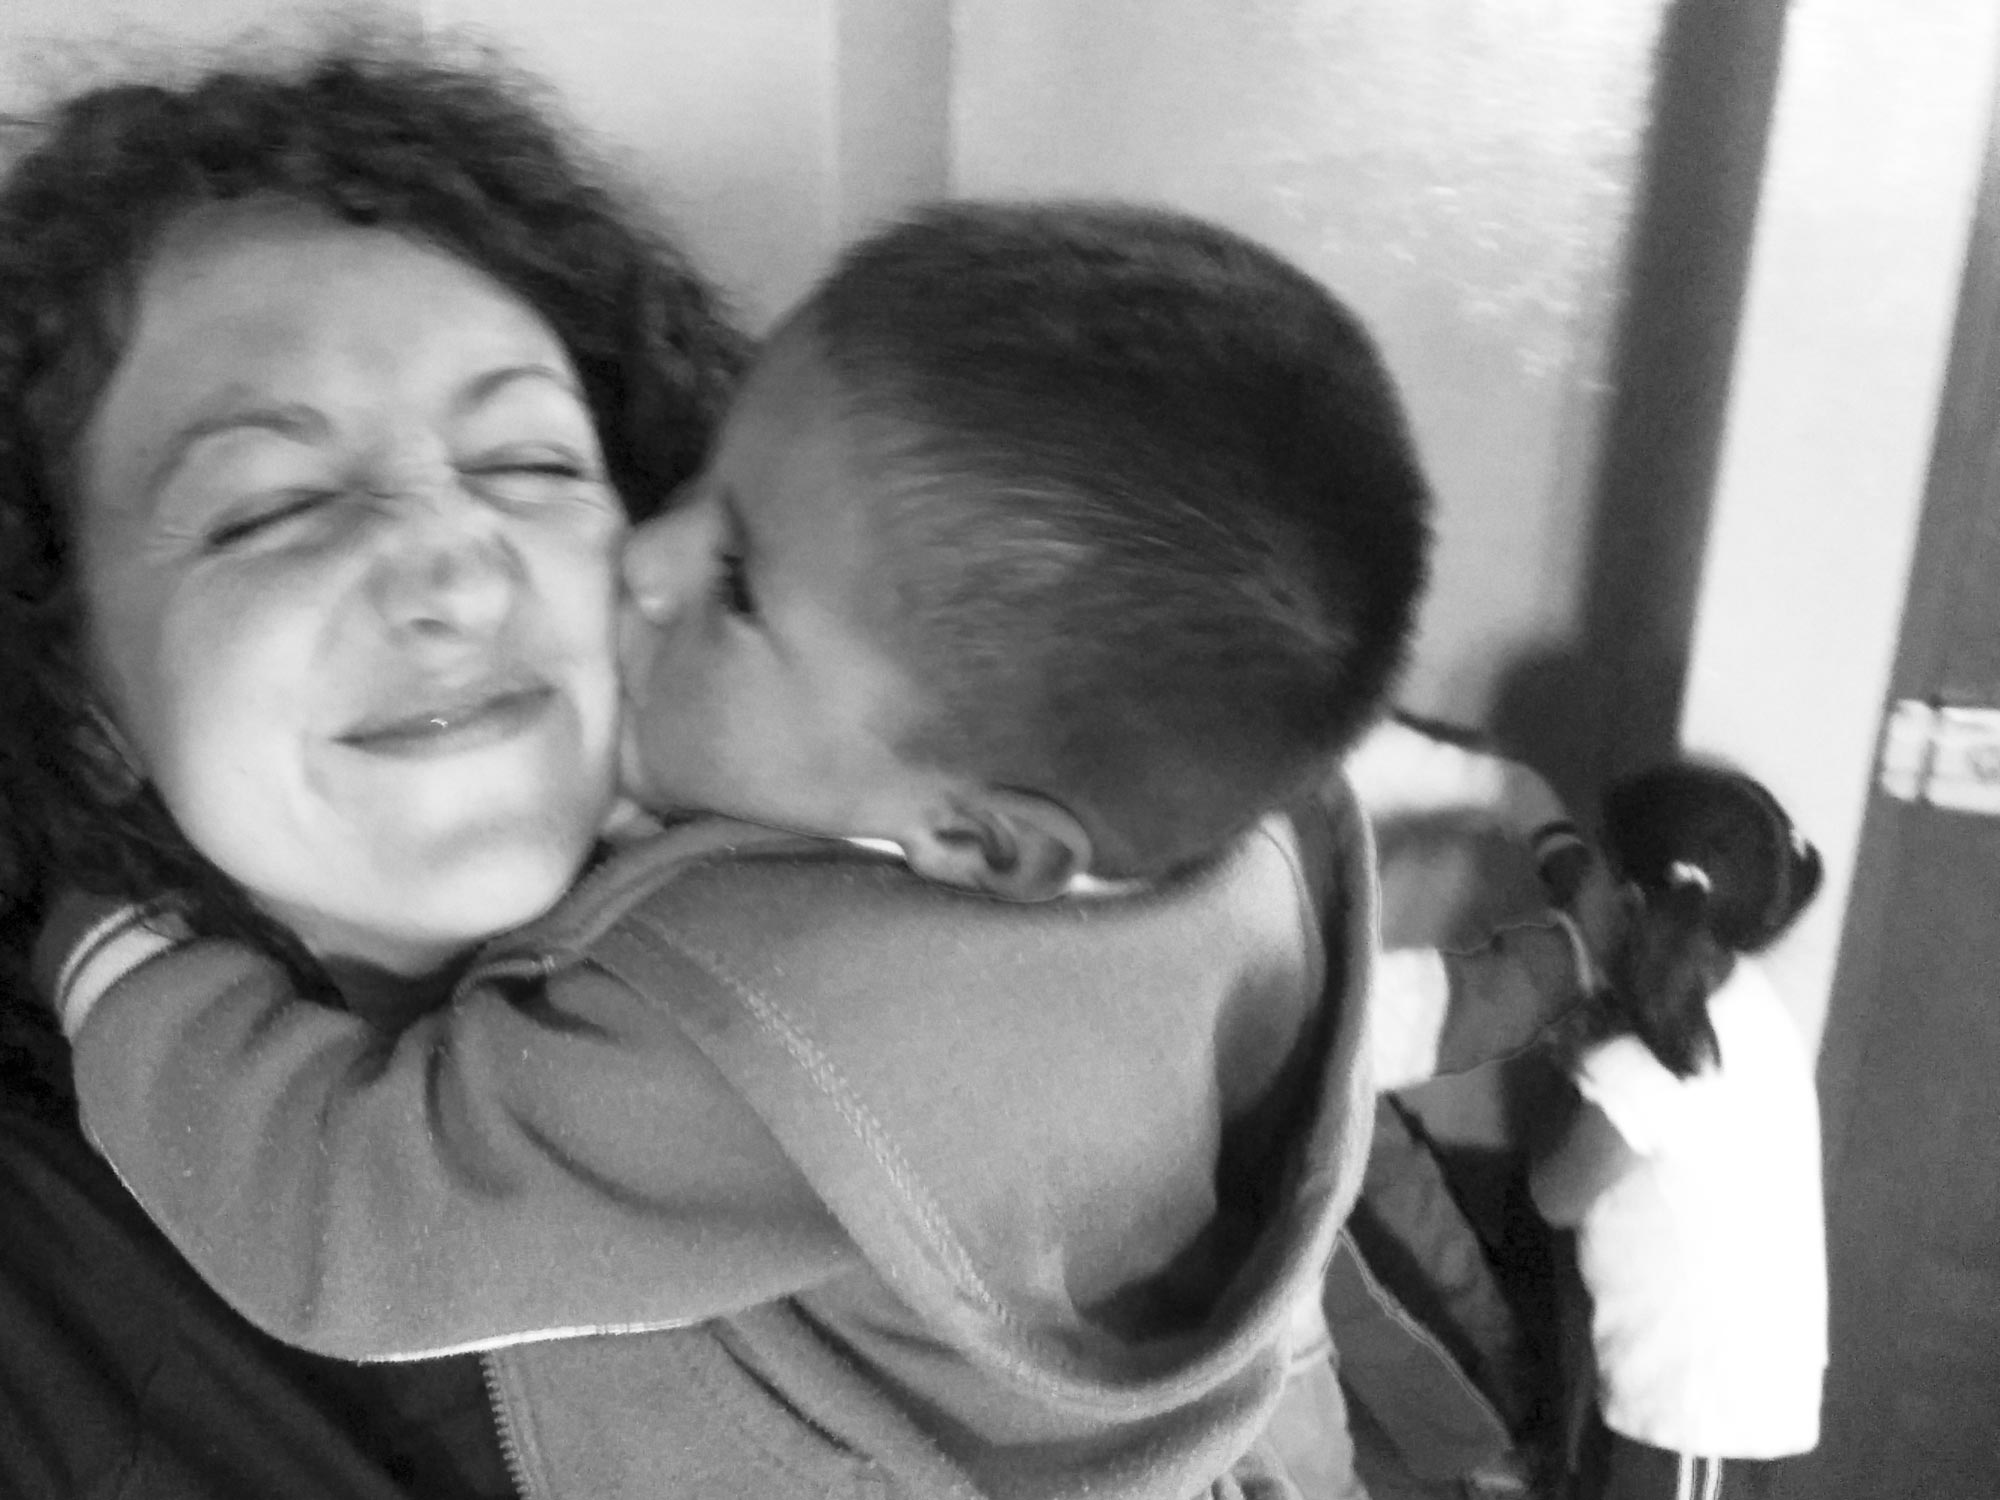 Peru Ayacucho Puericultorio kiss and hug from a kid